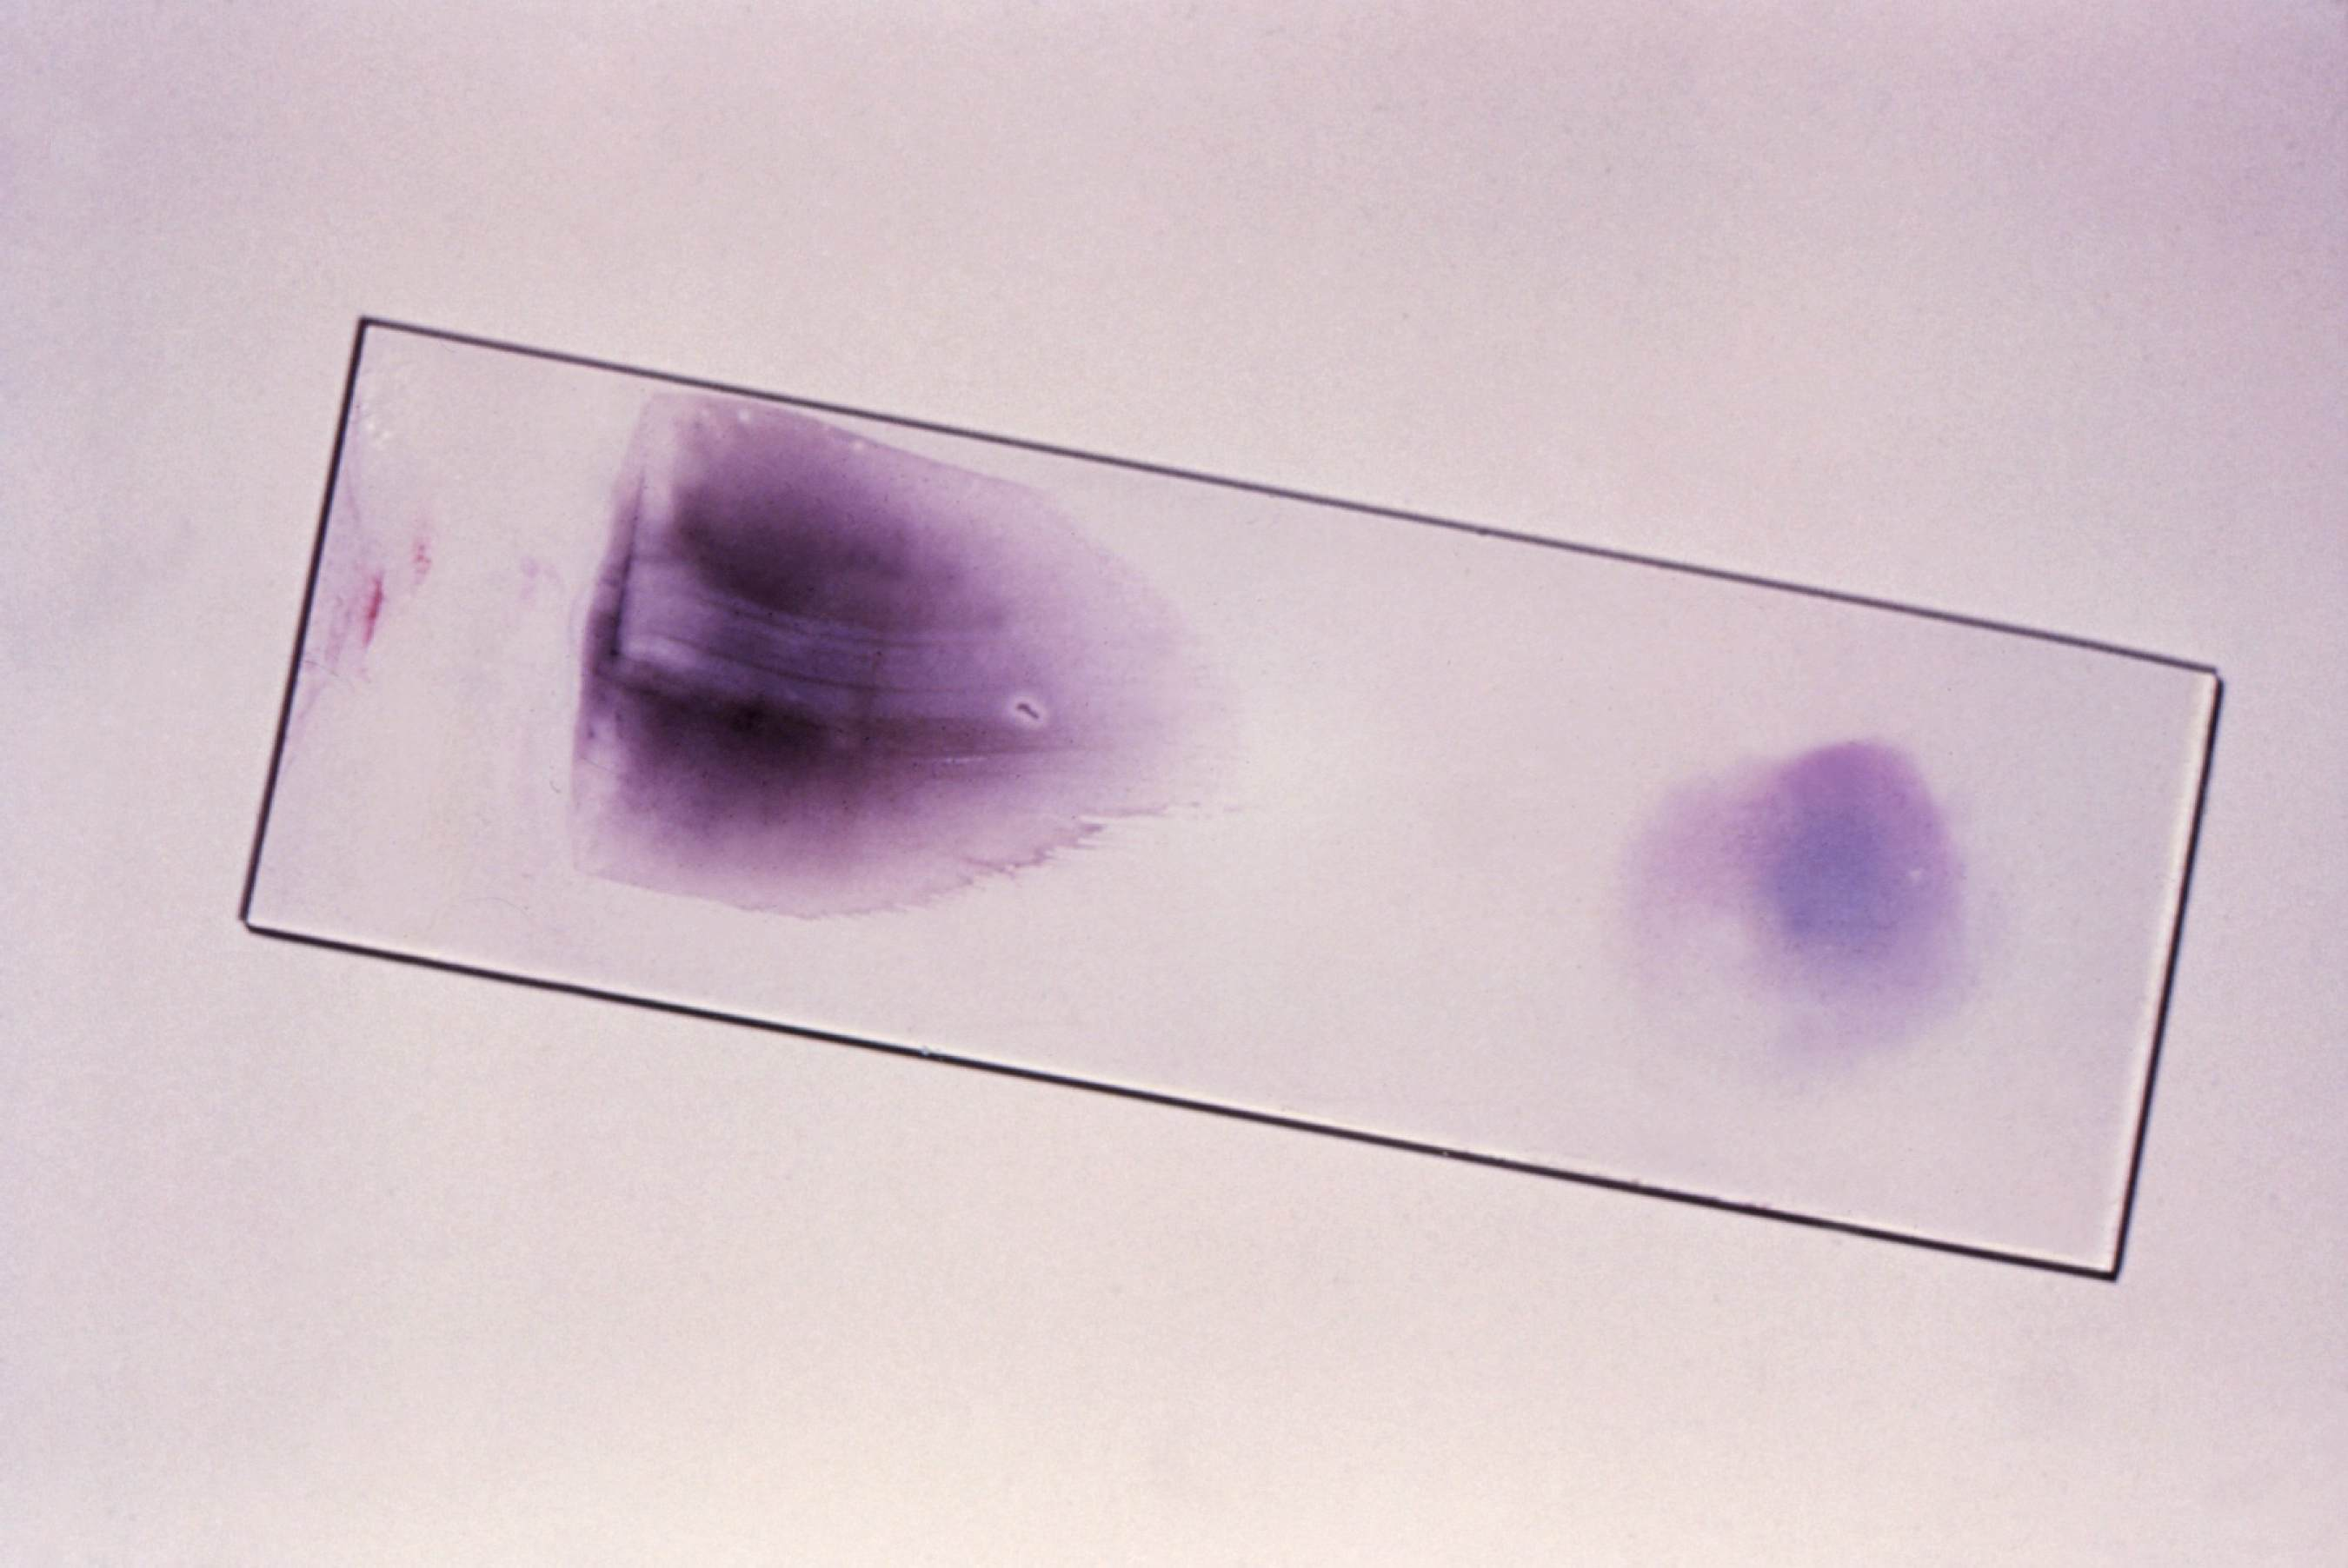 Free picture: microscope, slide, display, appearance ...